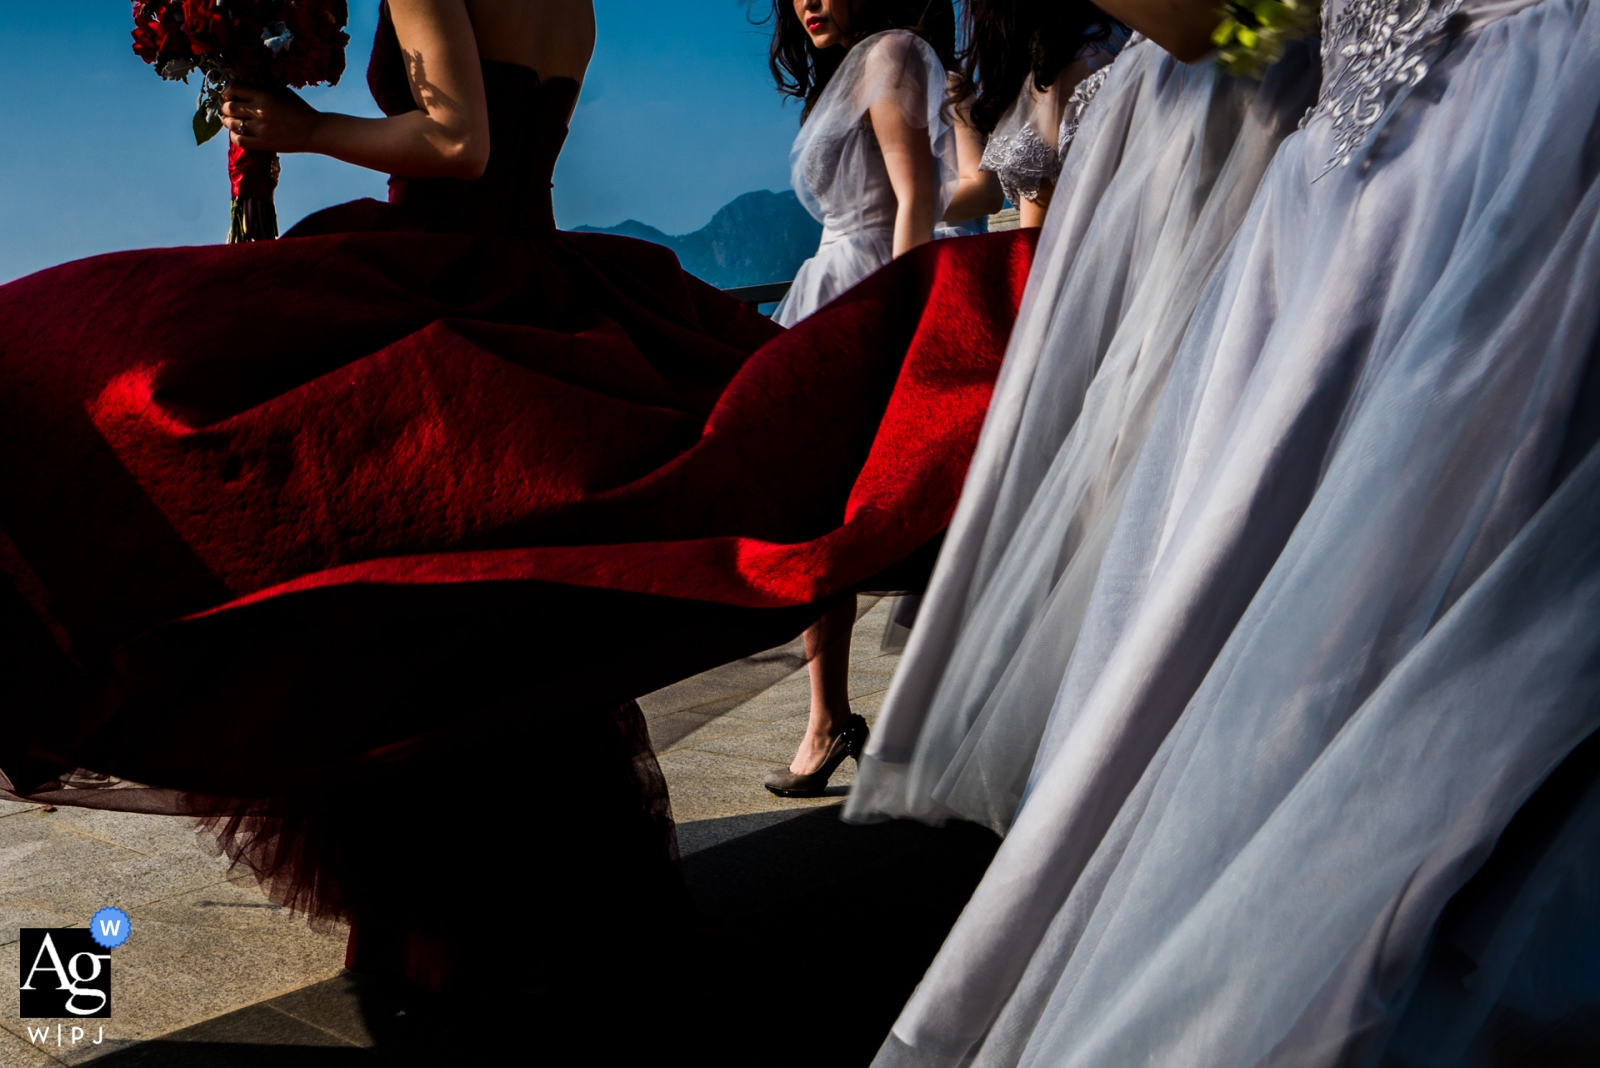 Wenzhou actual day wedding photographer | bride and bridesmaids Preparing for the ceremony outside in the wind with their bouquets.